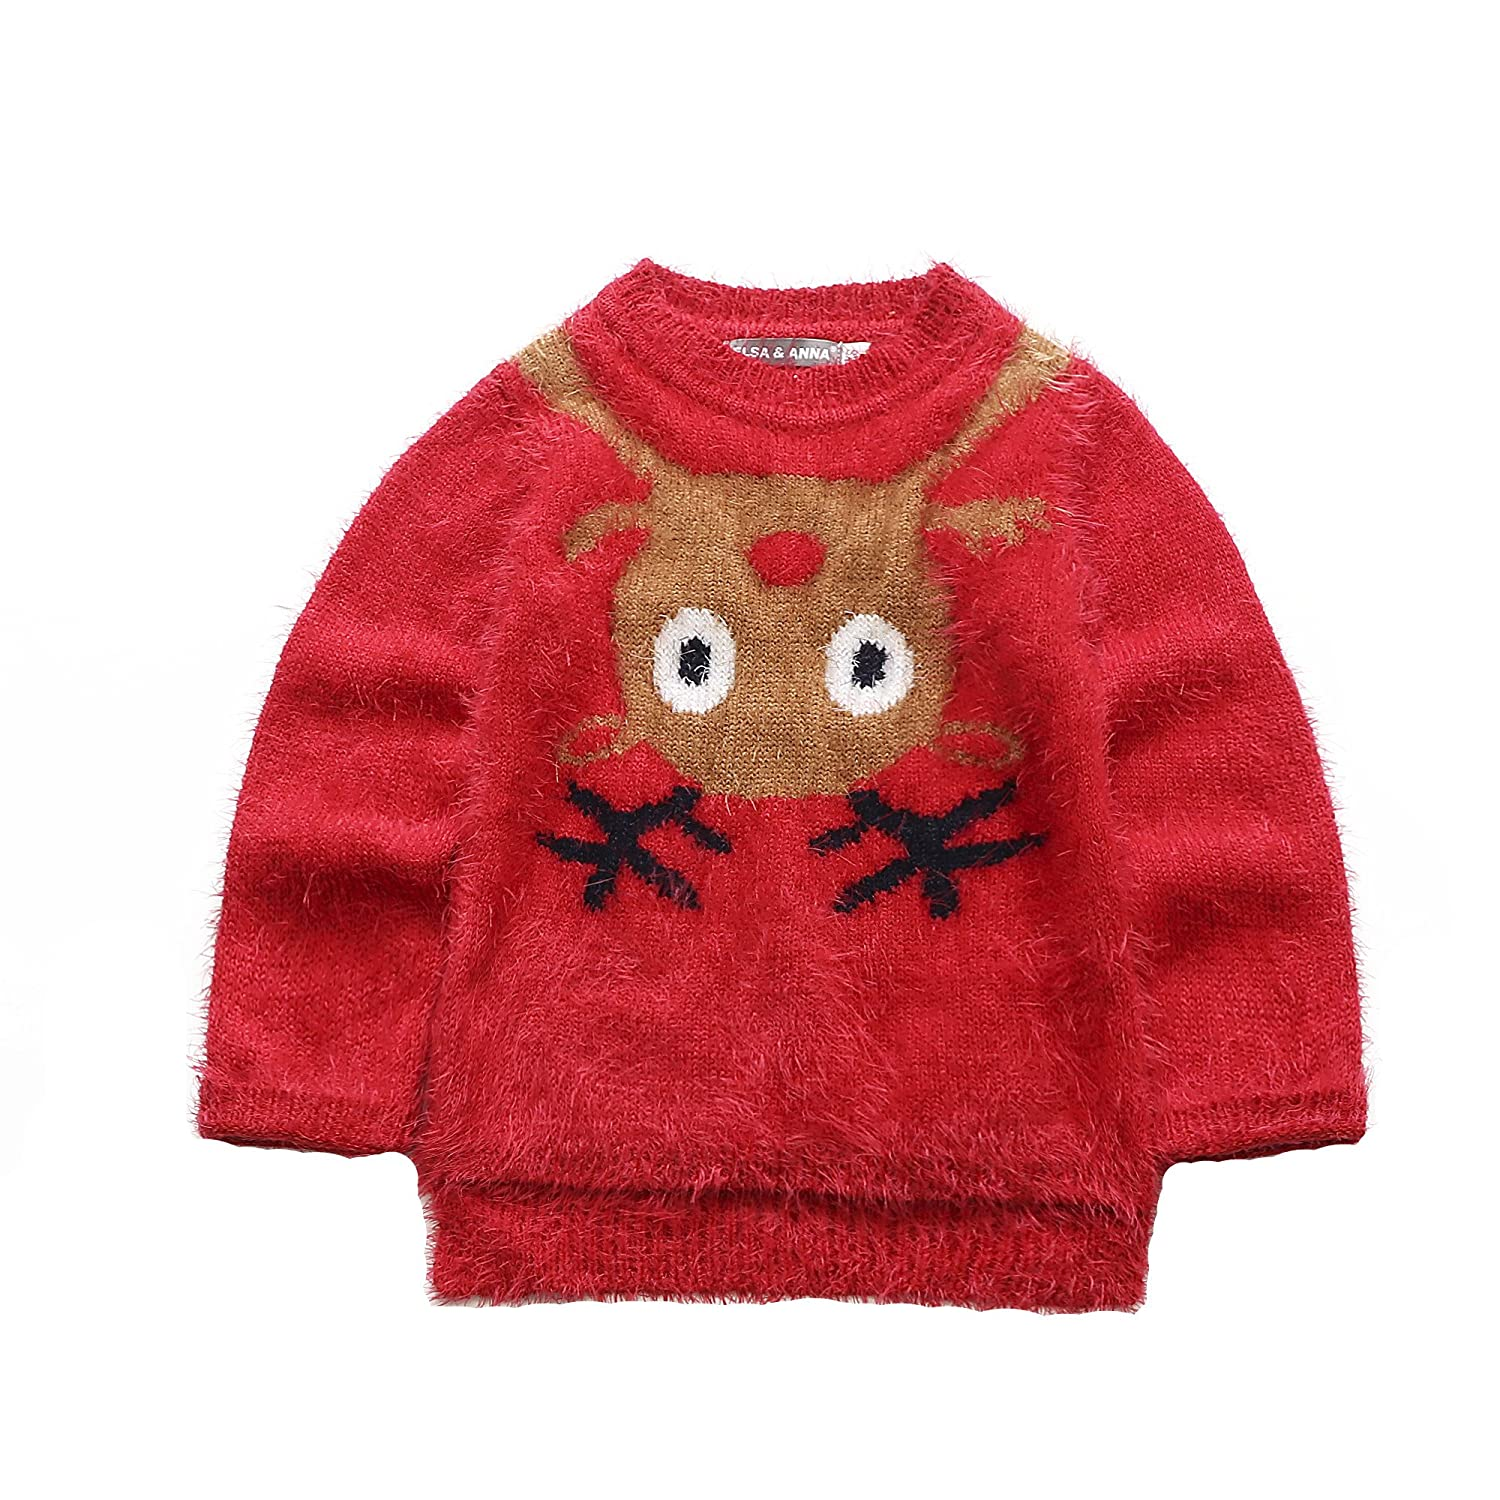 UK ELSA & ANNA® Top Quality Girls Children Kids Christmas Jumper Girls Xmas Jumpers Sweater REDJUM11 (RED, 3-4 years) UK1STCHOICE-ZONE